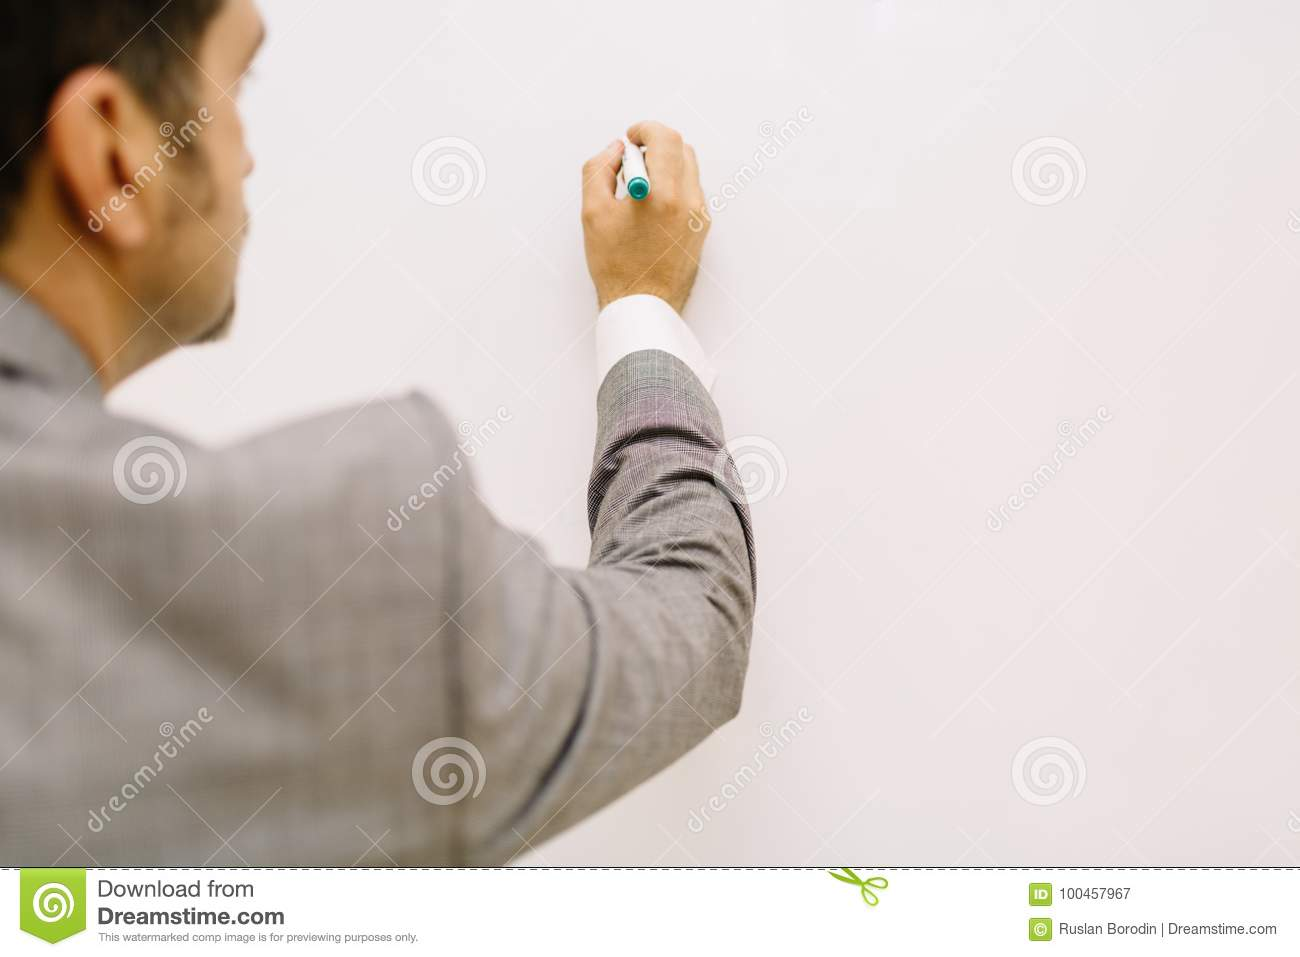 Teacher with a multimedia projector. Close-up businessman writing on a desk background. Lecture concept. Copy space.